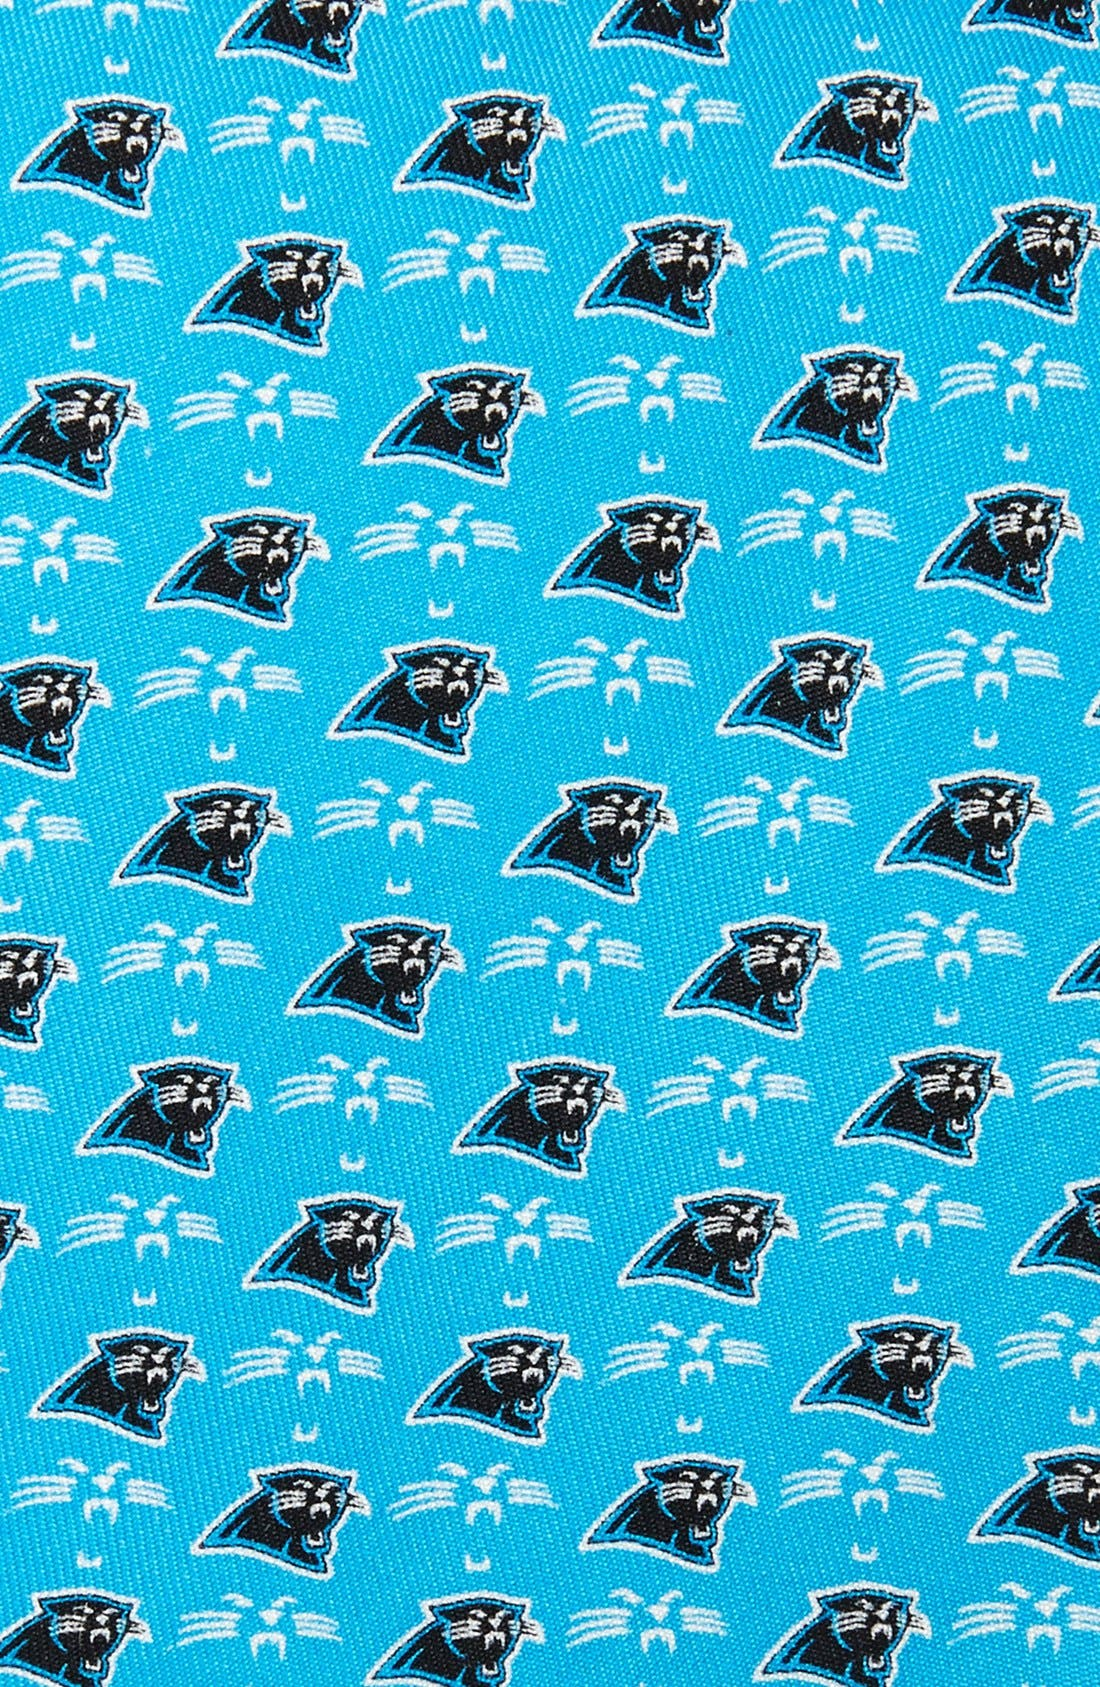 Carolina Panthers - NFL Woven Silk Tie,                             Alternate thumbnail 2, color,                             453